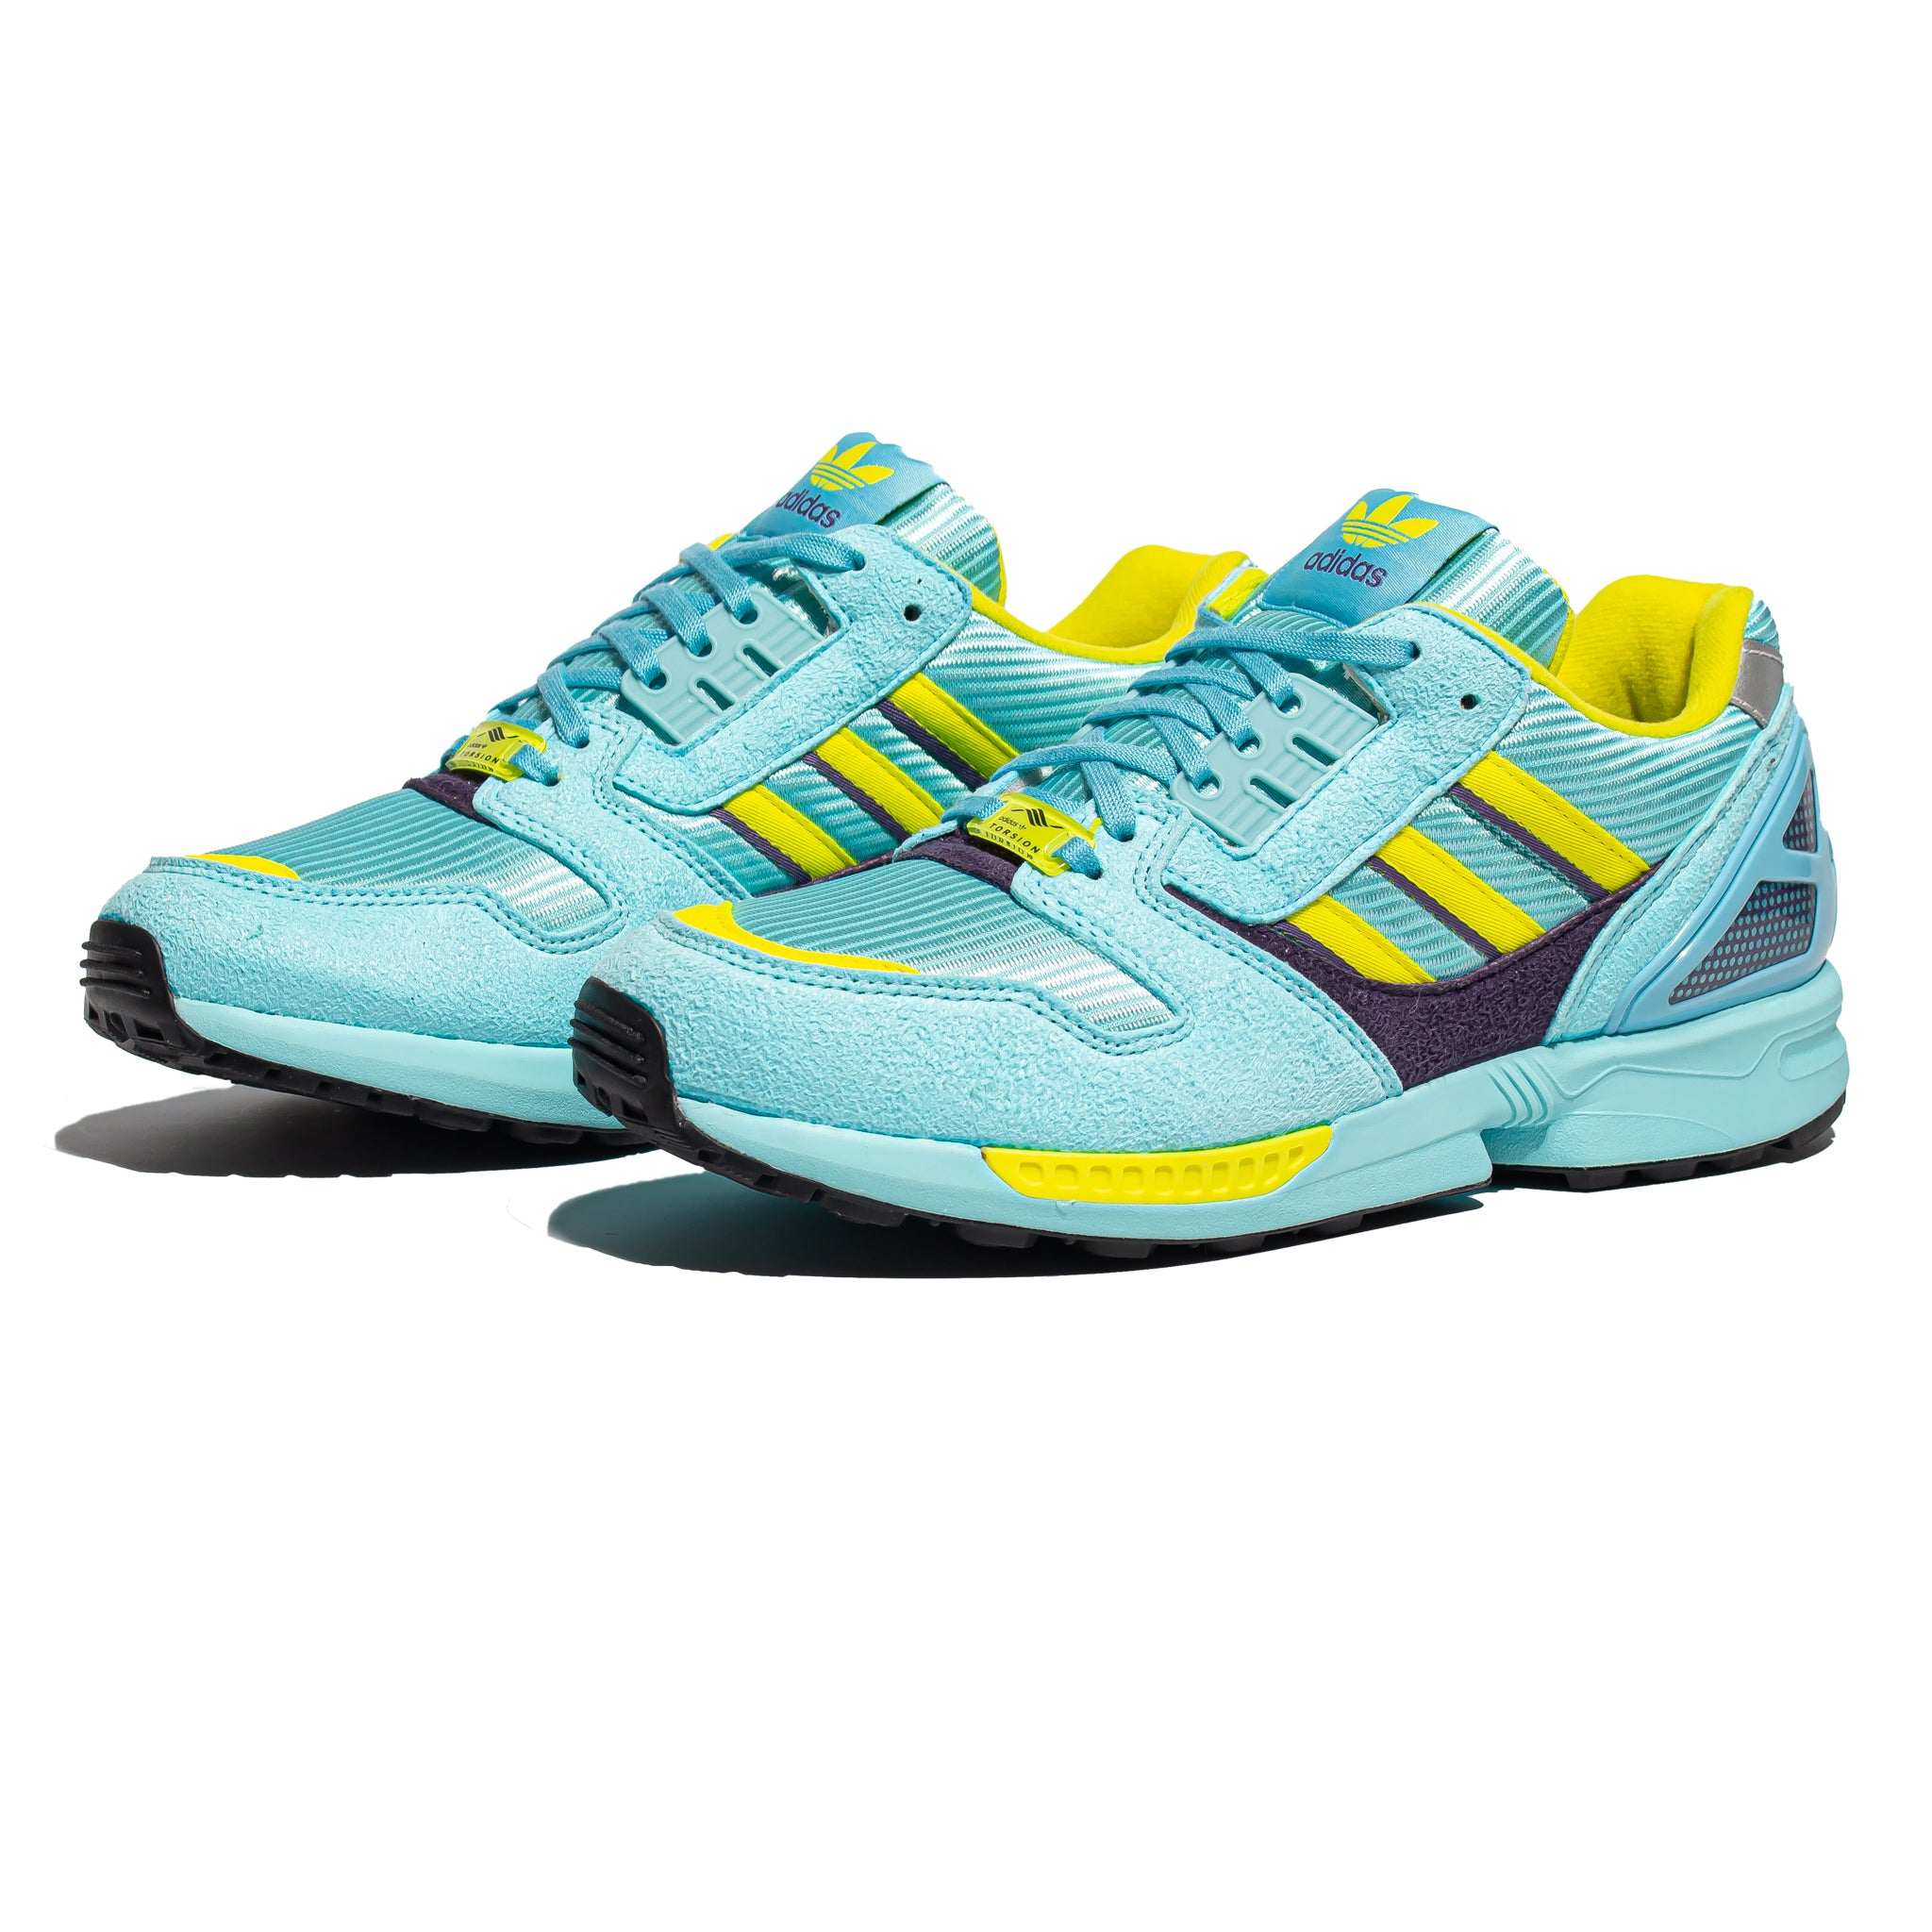 Adidas ZX 8000 Clear Aqua/Light Aqua